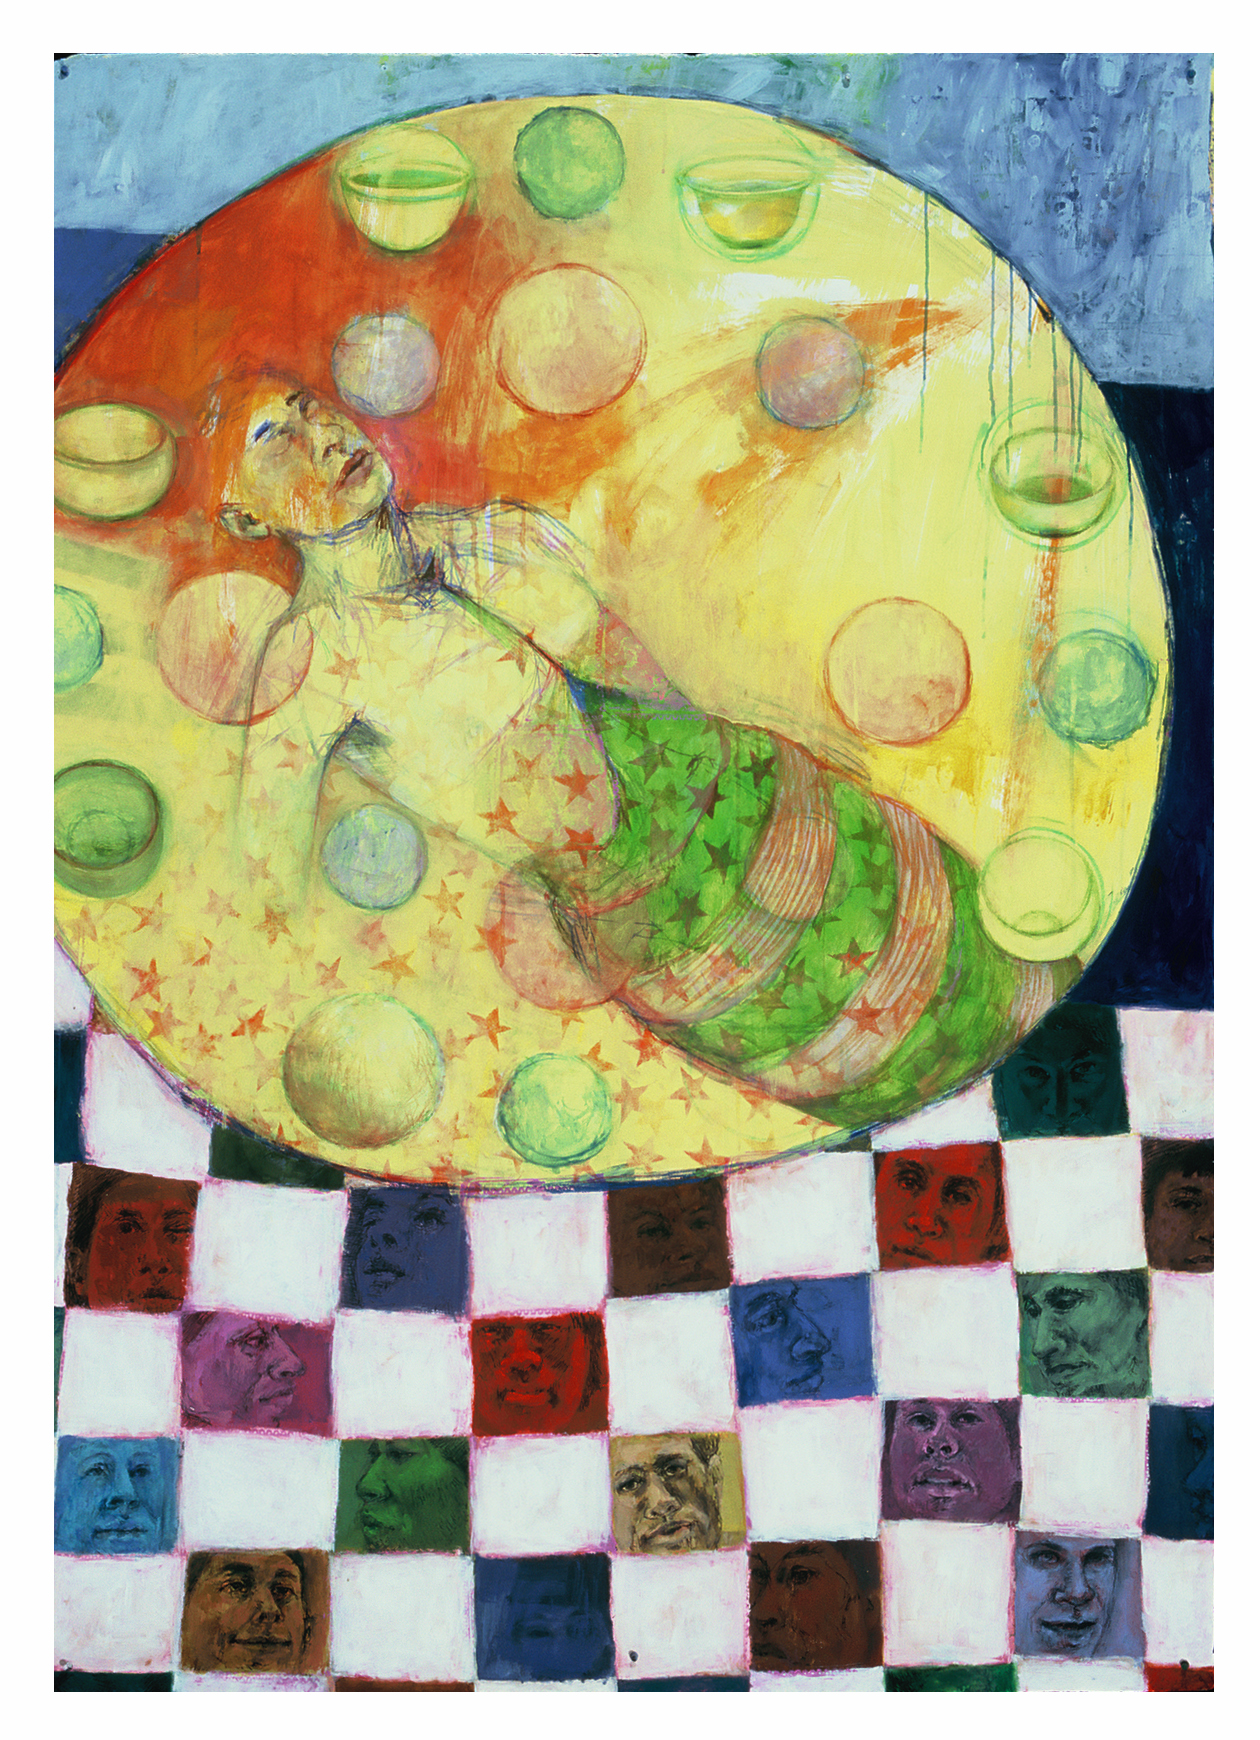 portraits, quilt, painting, drawing, cancer, spheres, bowls, healing, floating